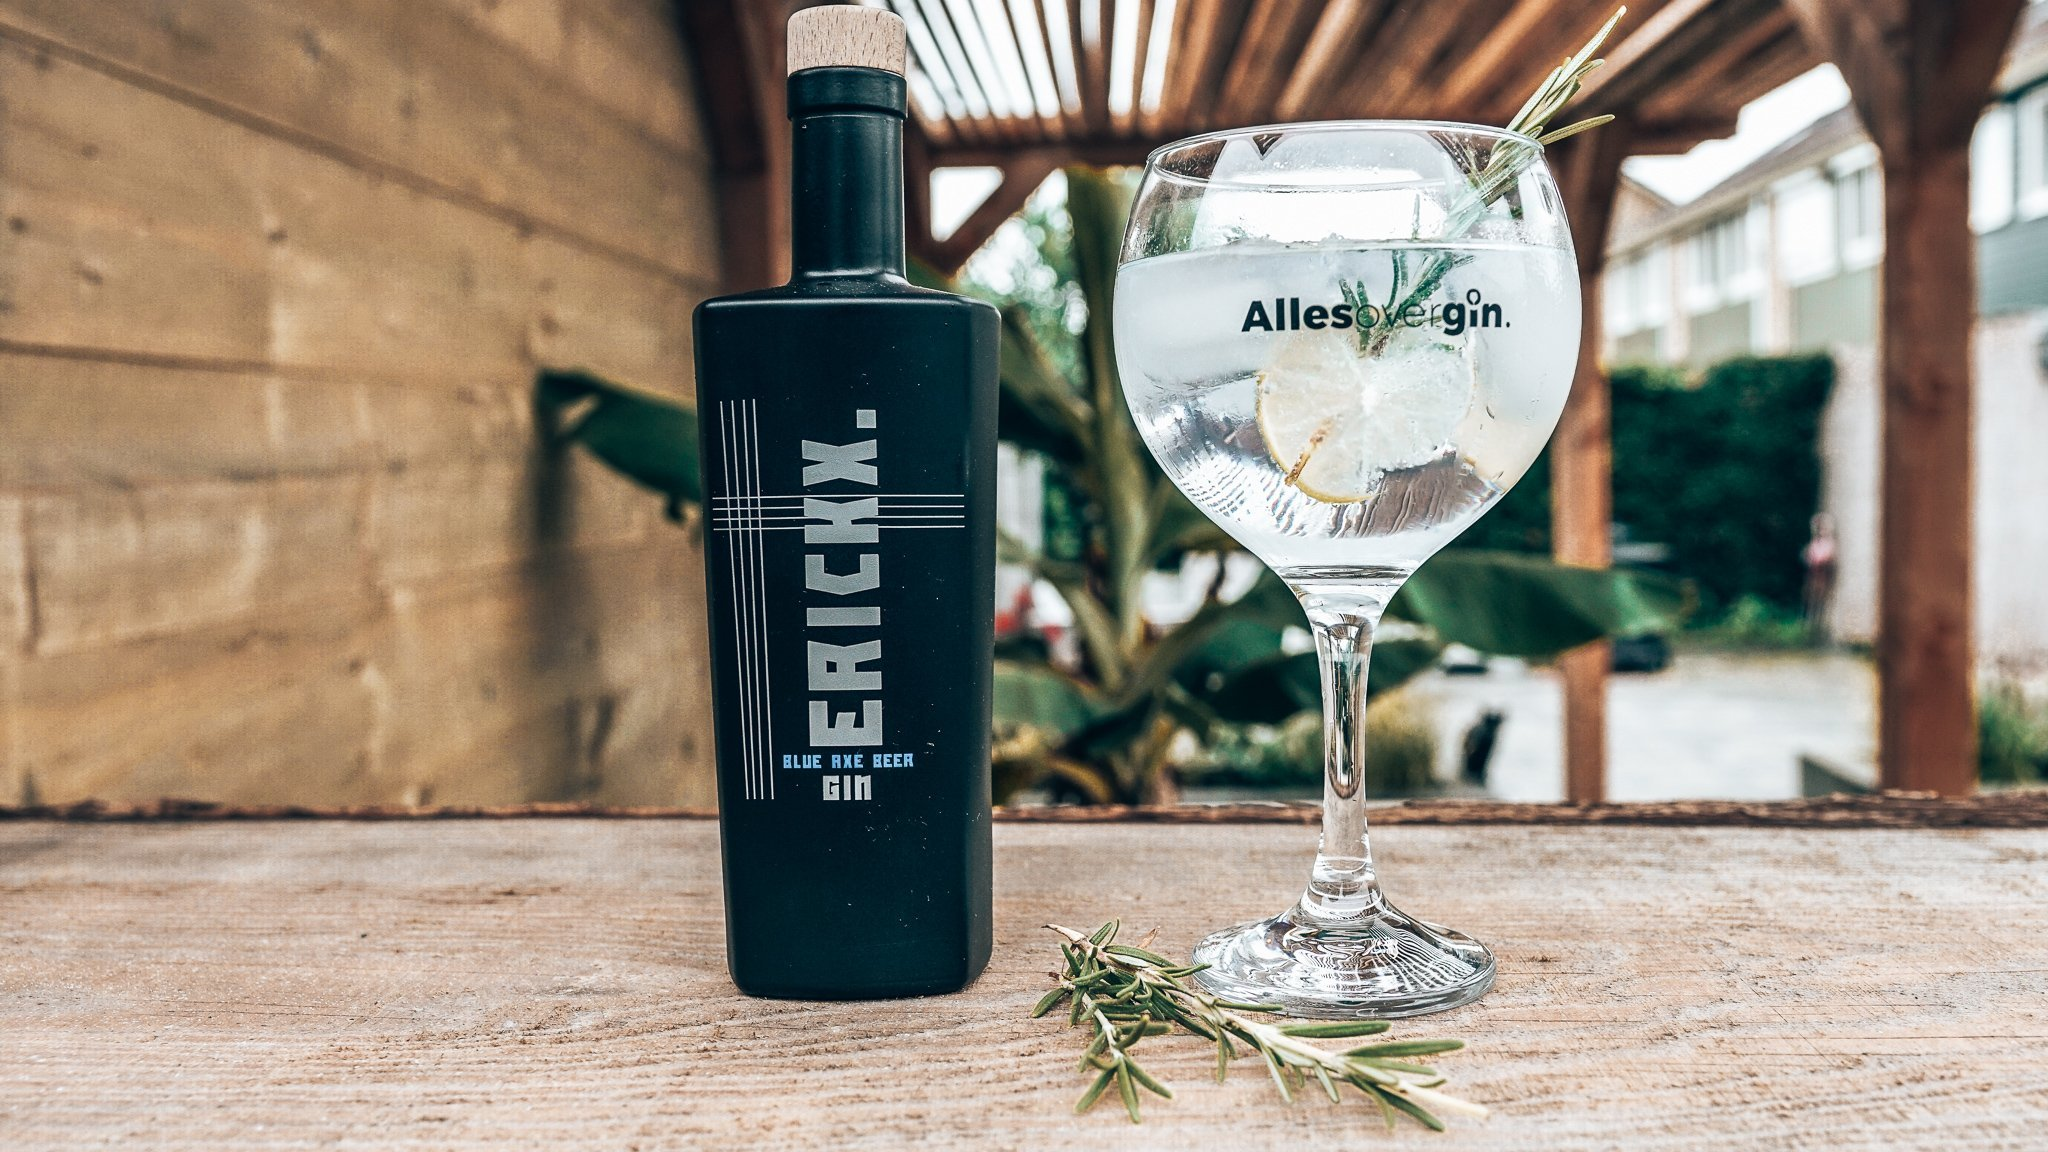 Erickx Gin perfect serve, Alles over gin.